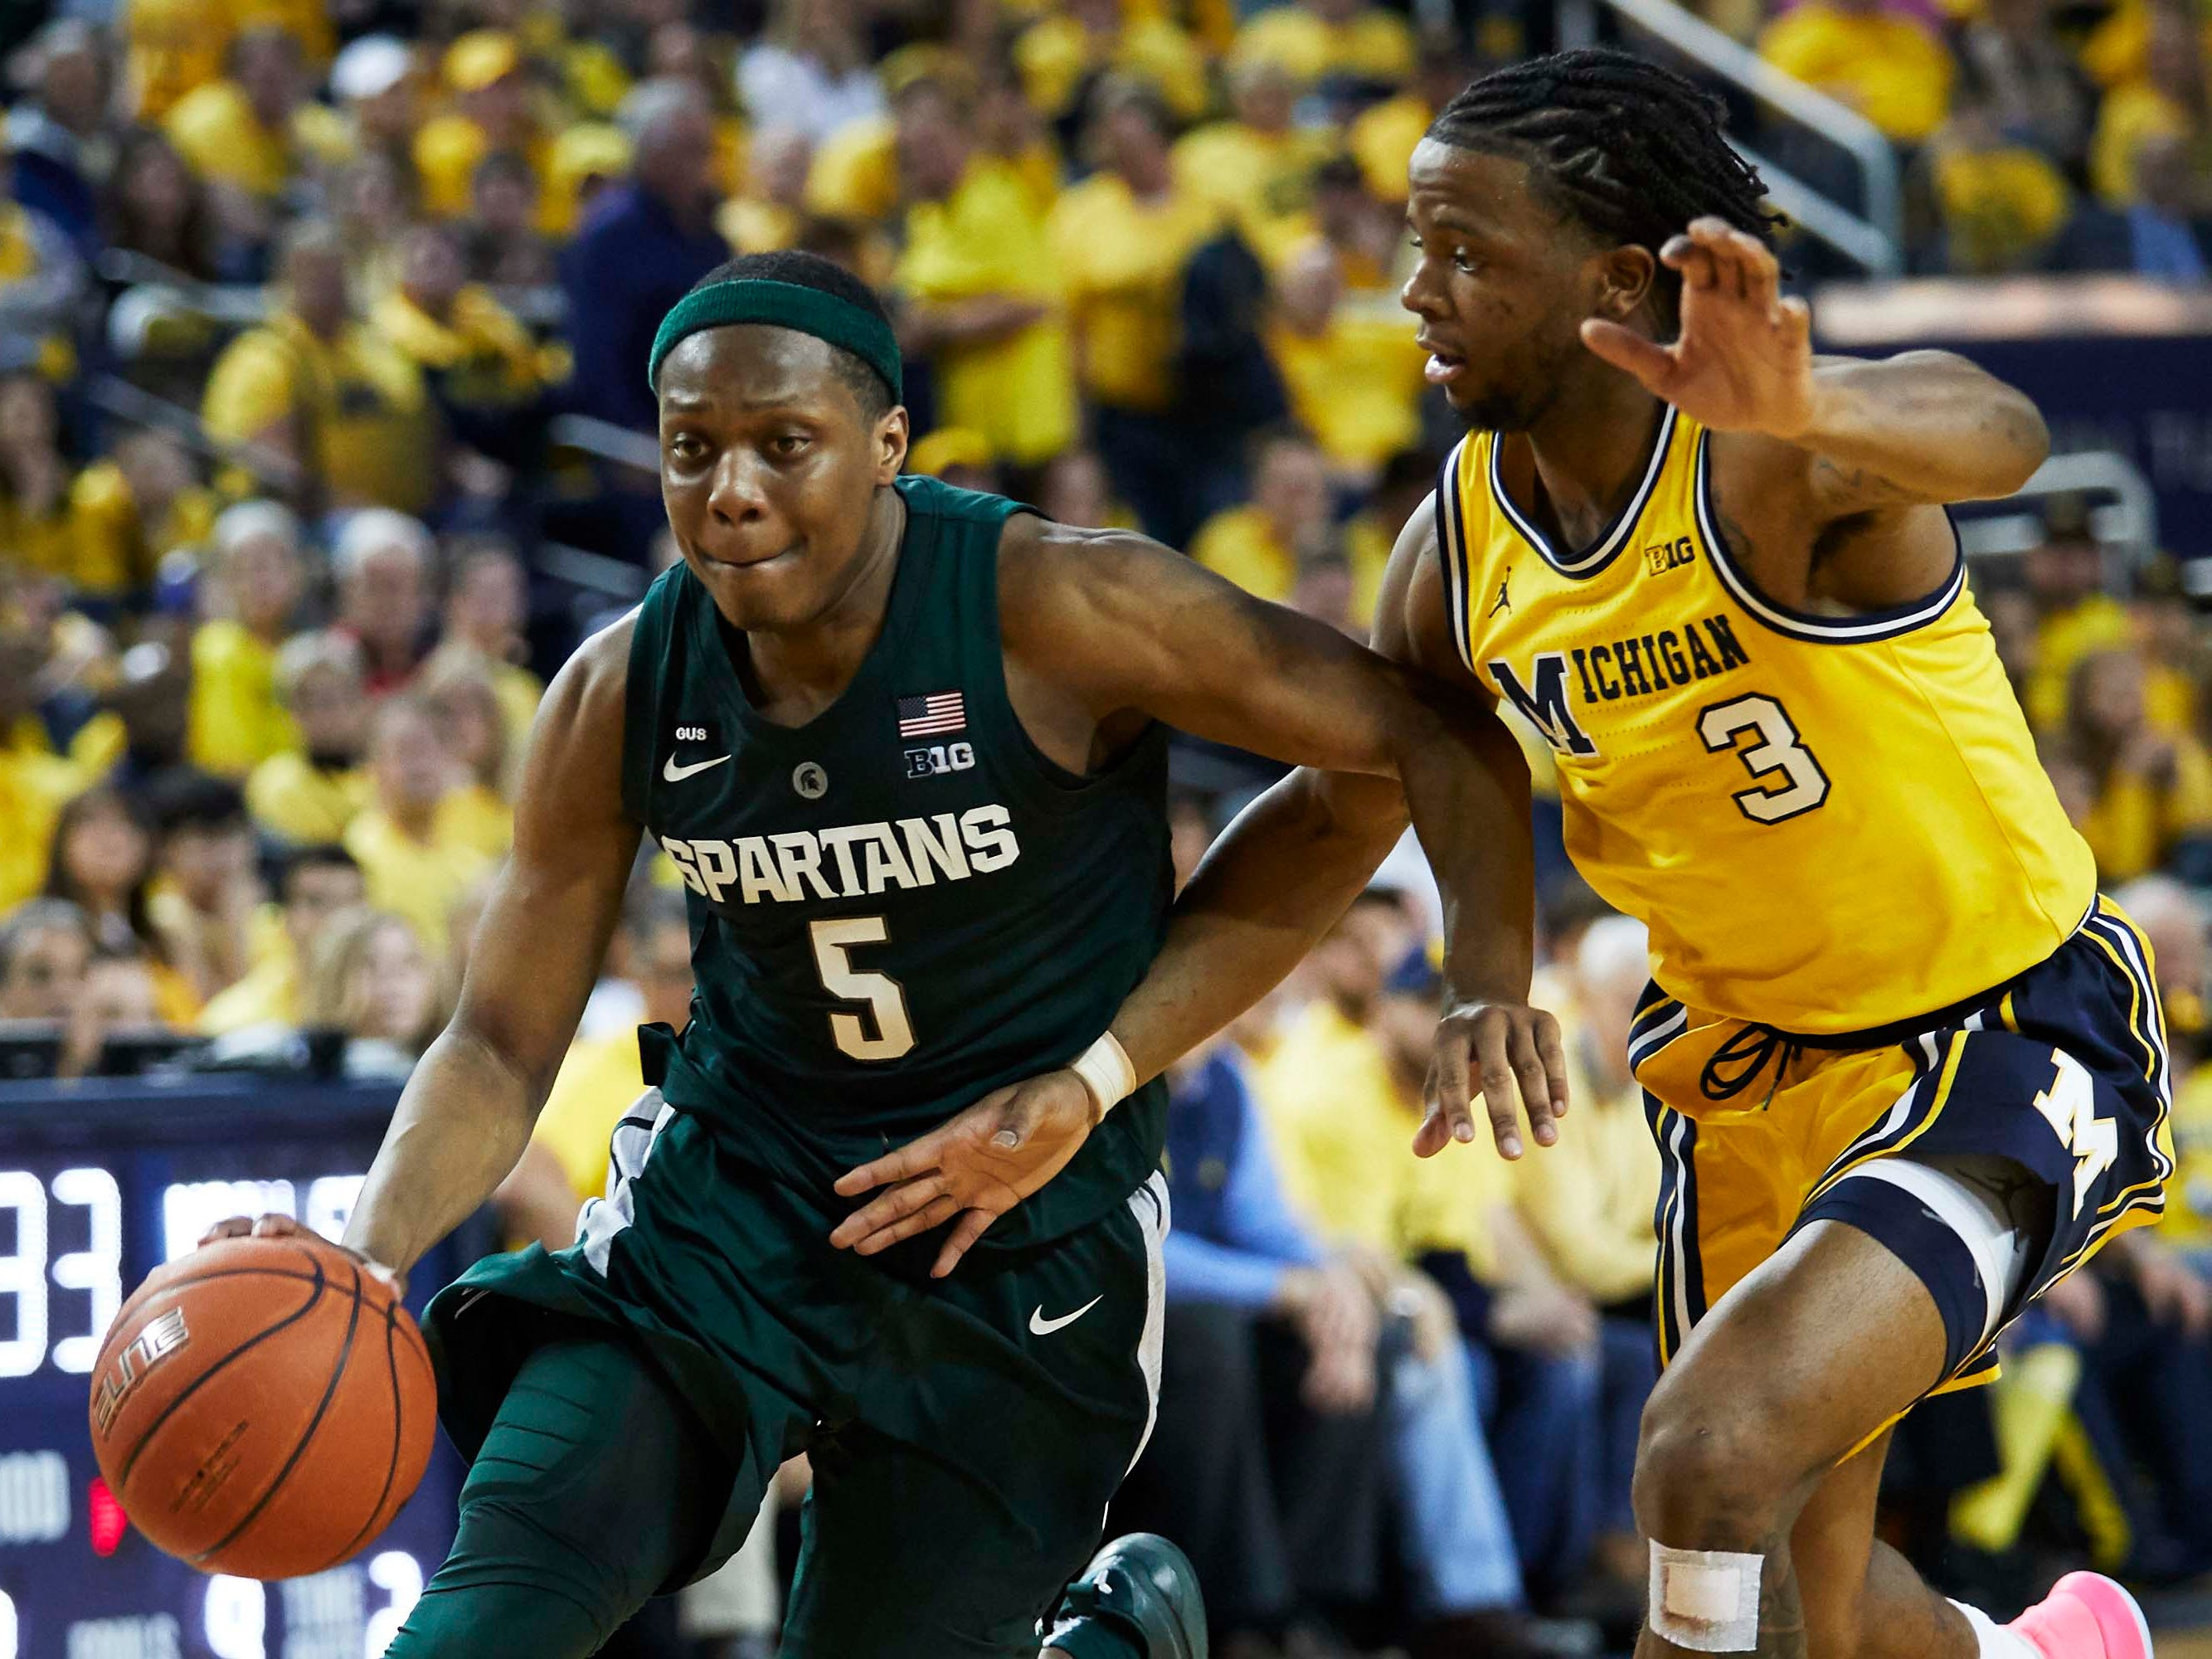 Michigan State Spartans guard Cassius Winston (5) dribbles defended by Michigan Wolverines guard Zavier Simpson (3) in the second half at Crisler Center.